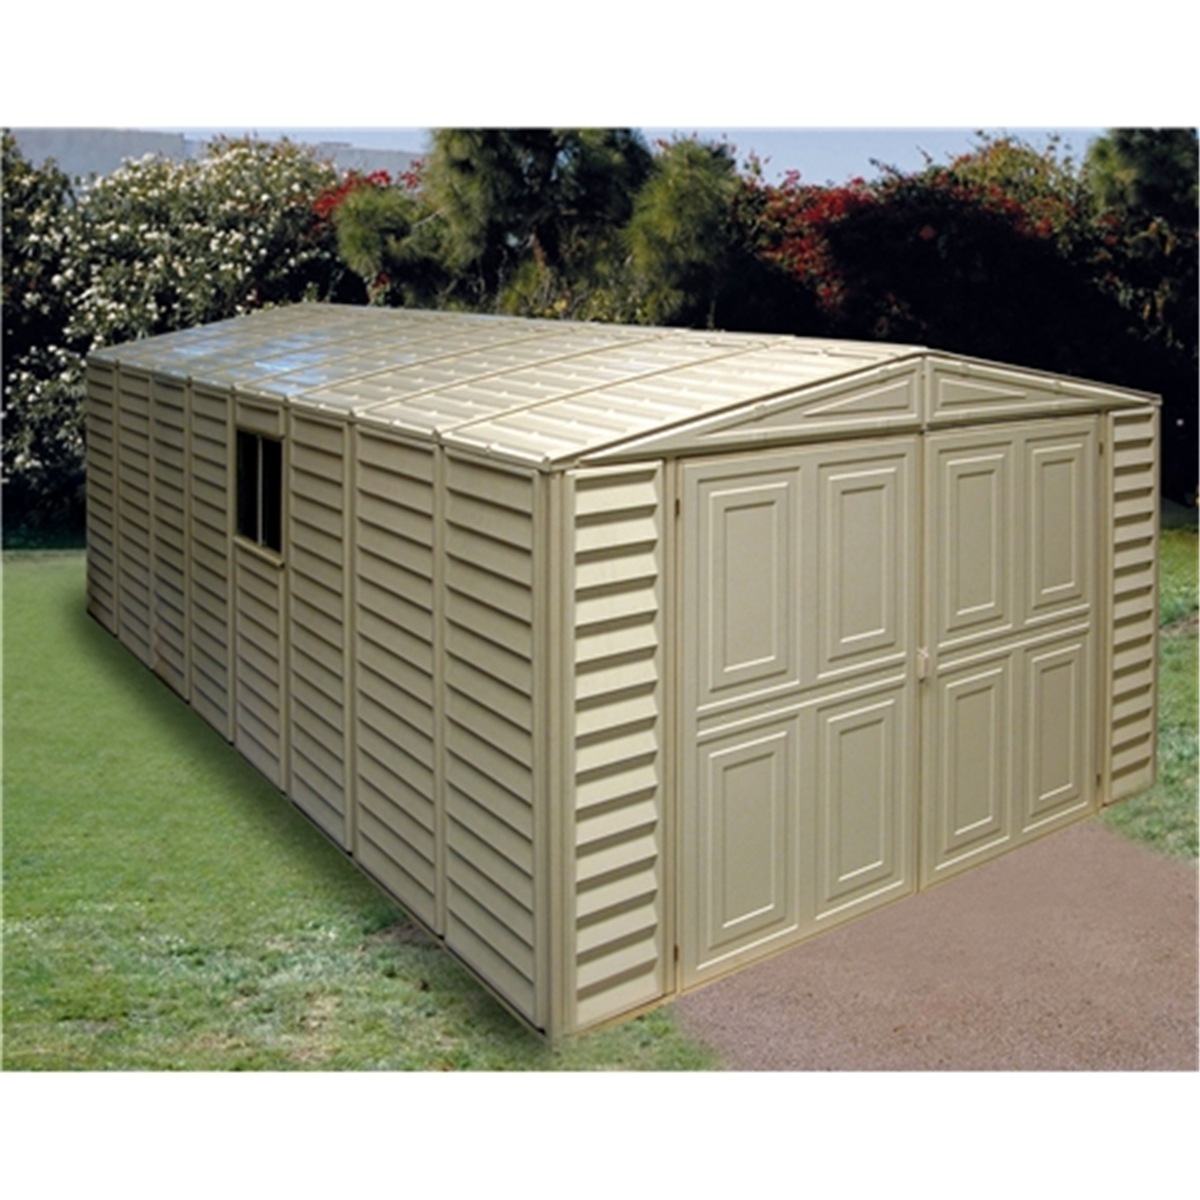 10 x 21 select duramax plastic pvc garage with steel frame x shedsfirst. Black Bedroom Furniture Sets. Home Design Ideas